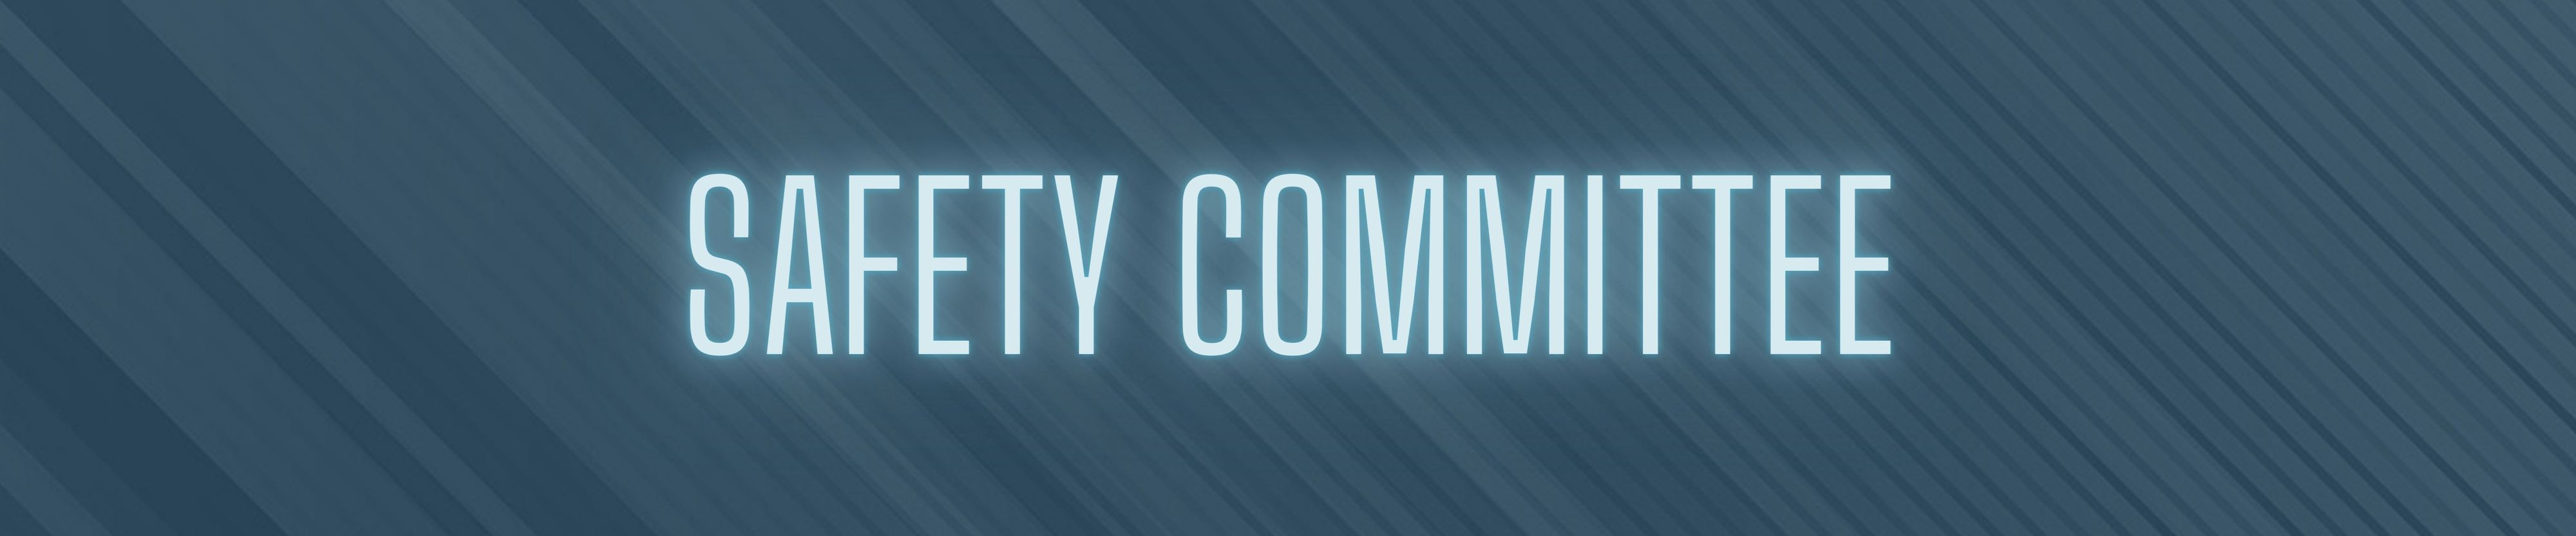 Safety Committee Banner.jpg